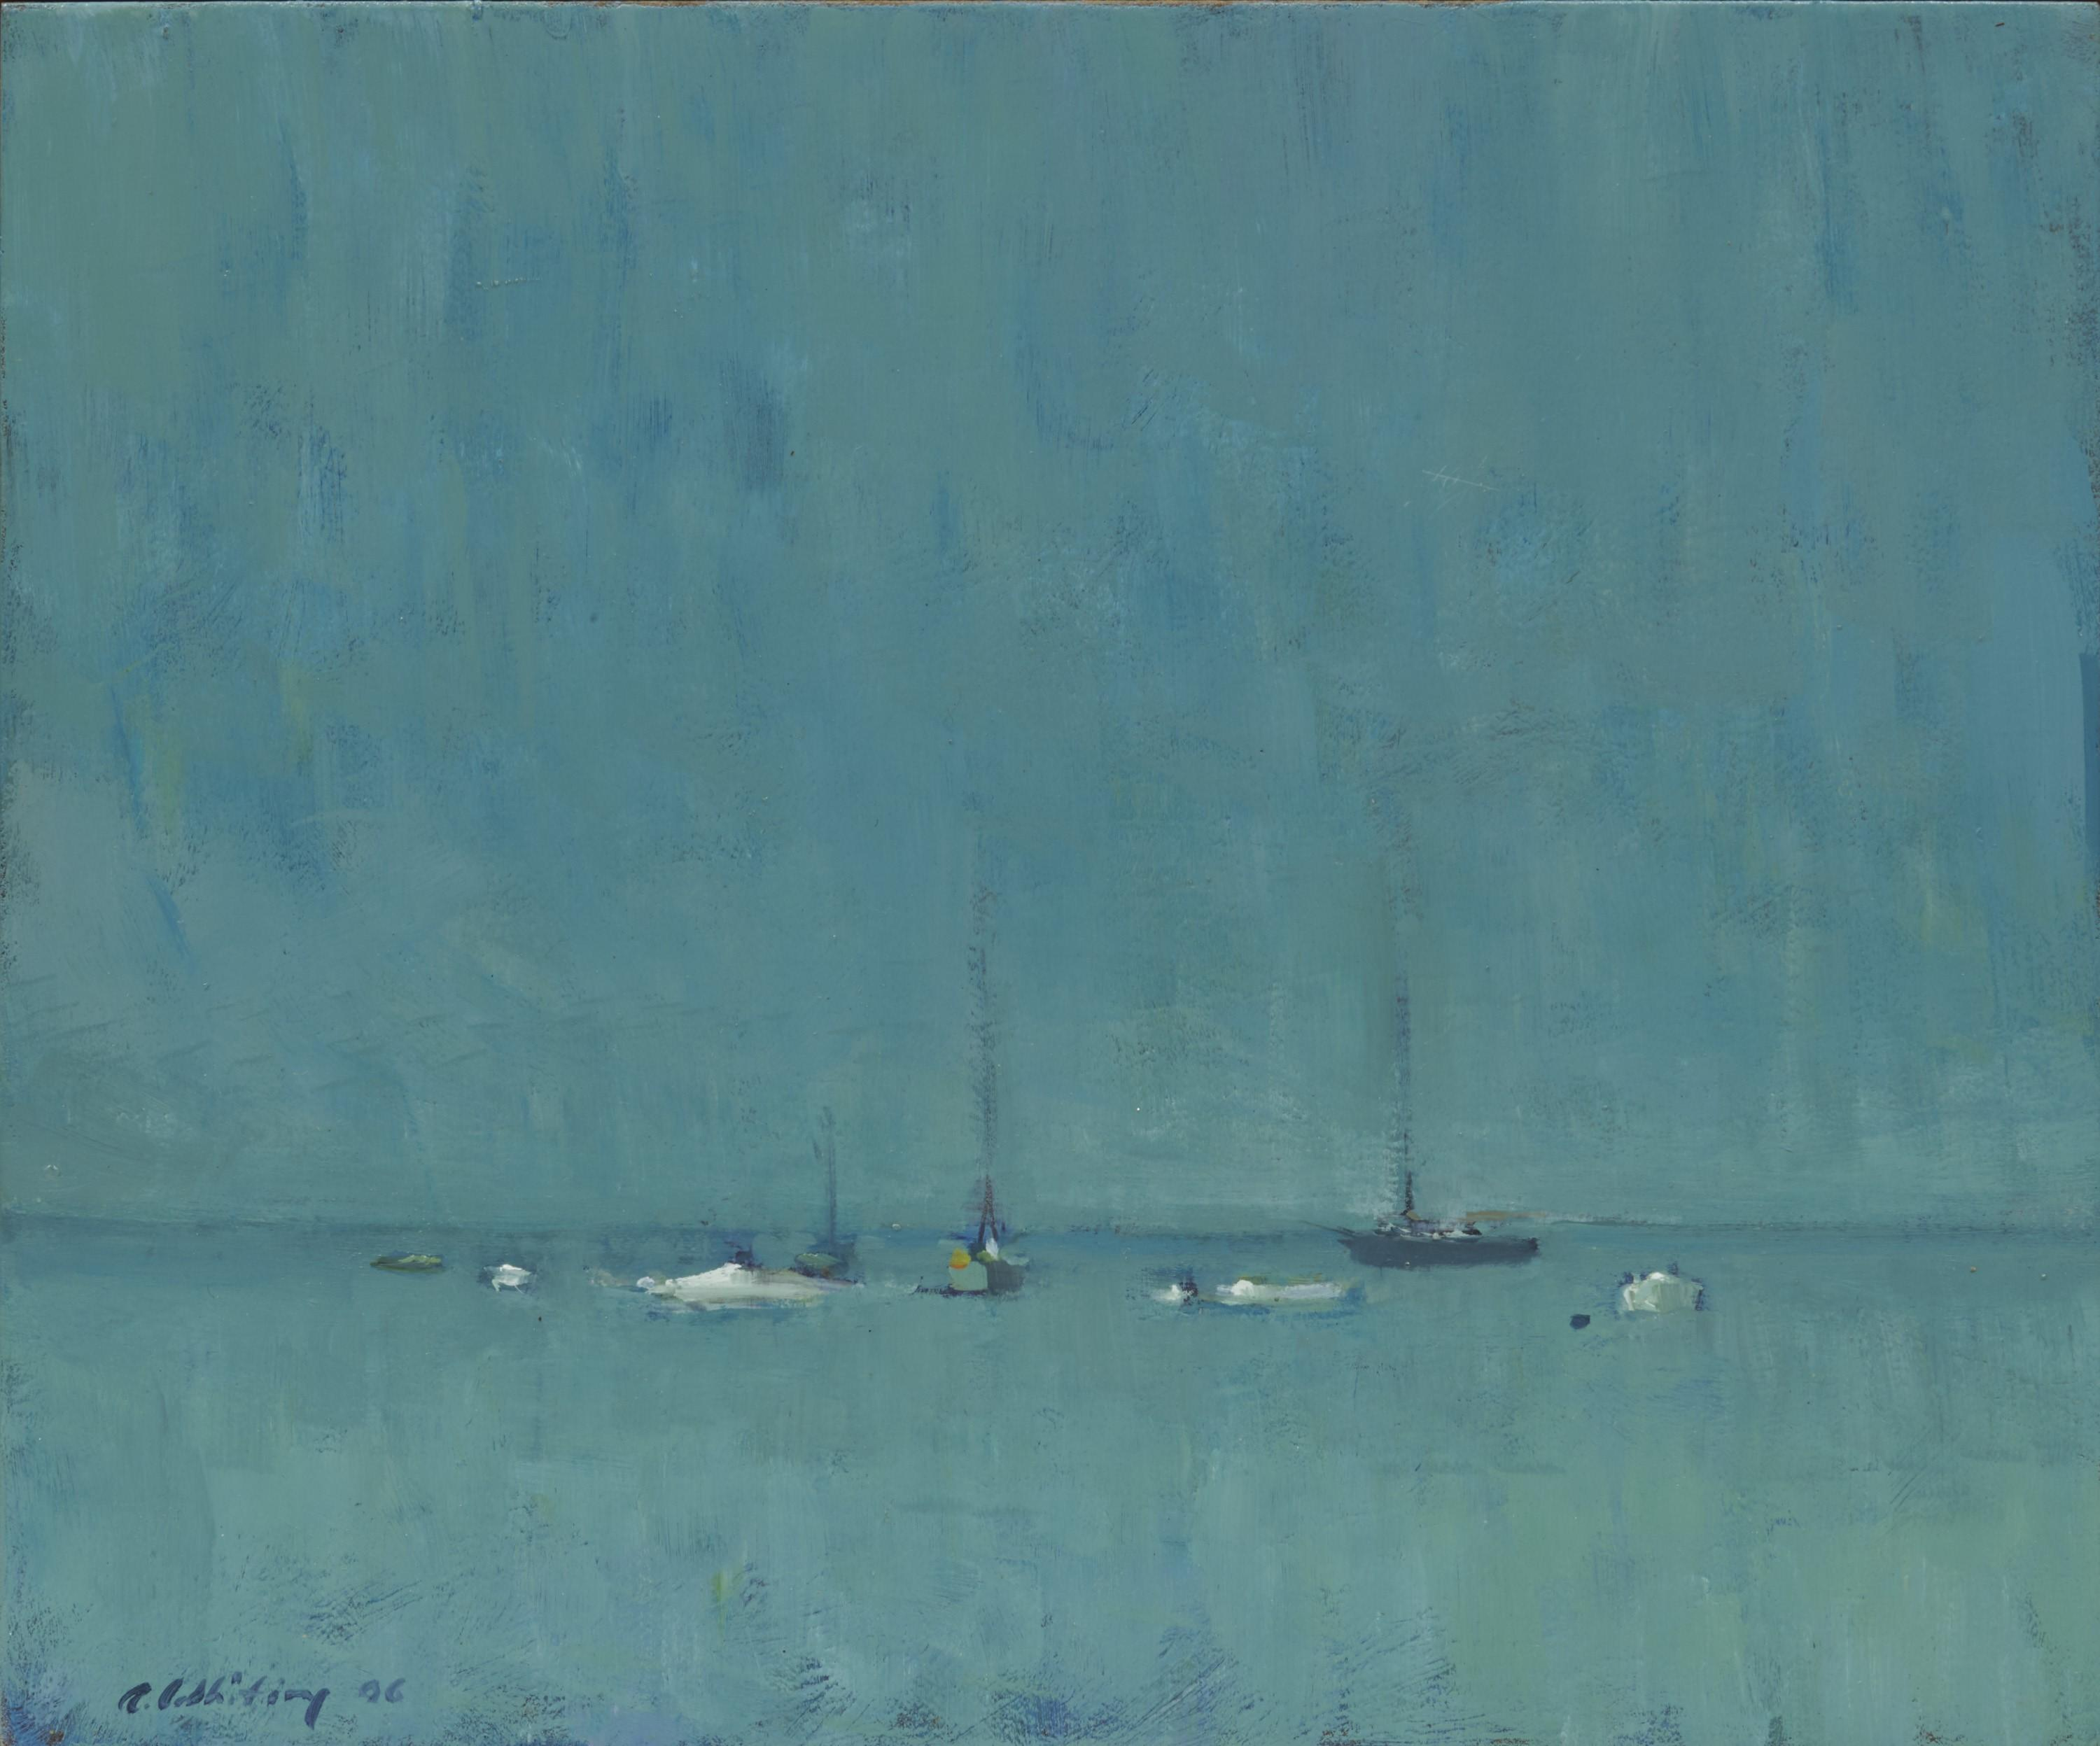 ALLEN WHITING, (American, b. 1946), Sailboats at Rest, Vineyard Haven, 2006, oil on board, 10 x 12 in., frame: 10 1/2 x 12 1/2 in.